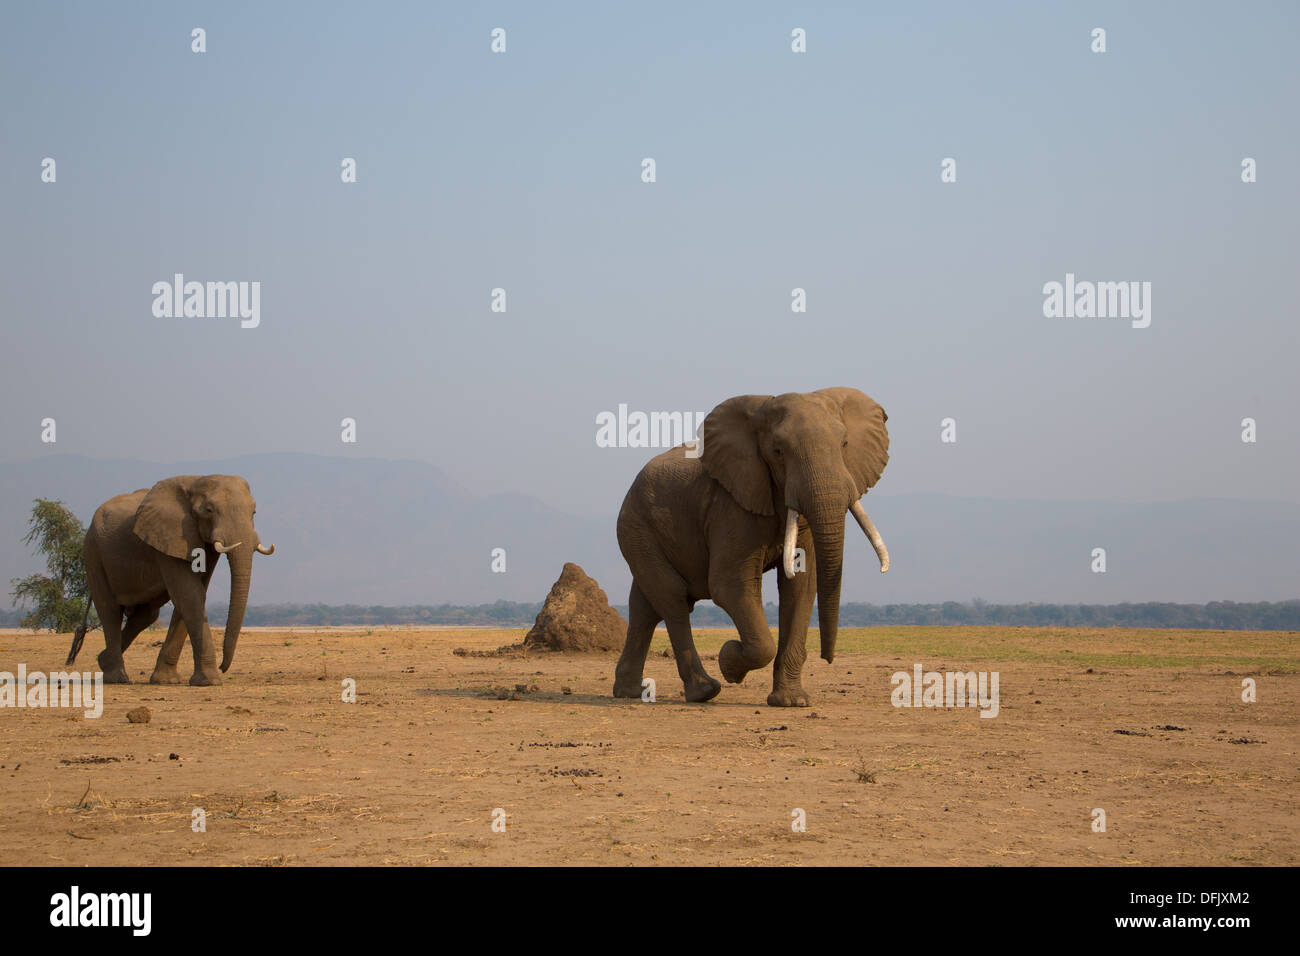 Two African elephants walking across dry plain by the Zambezi river - Stock Image